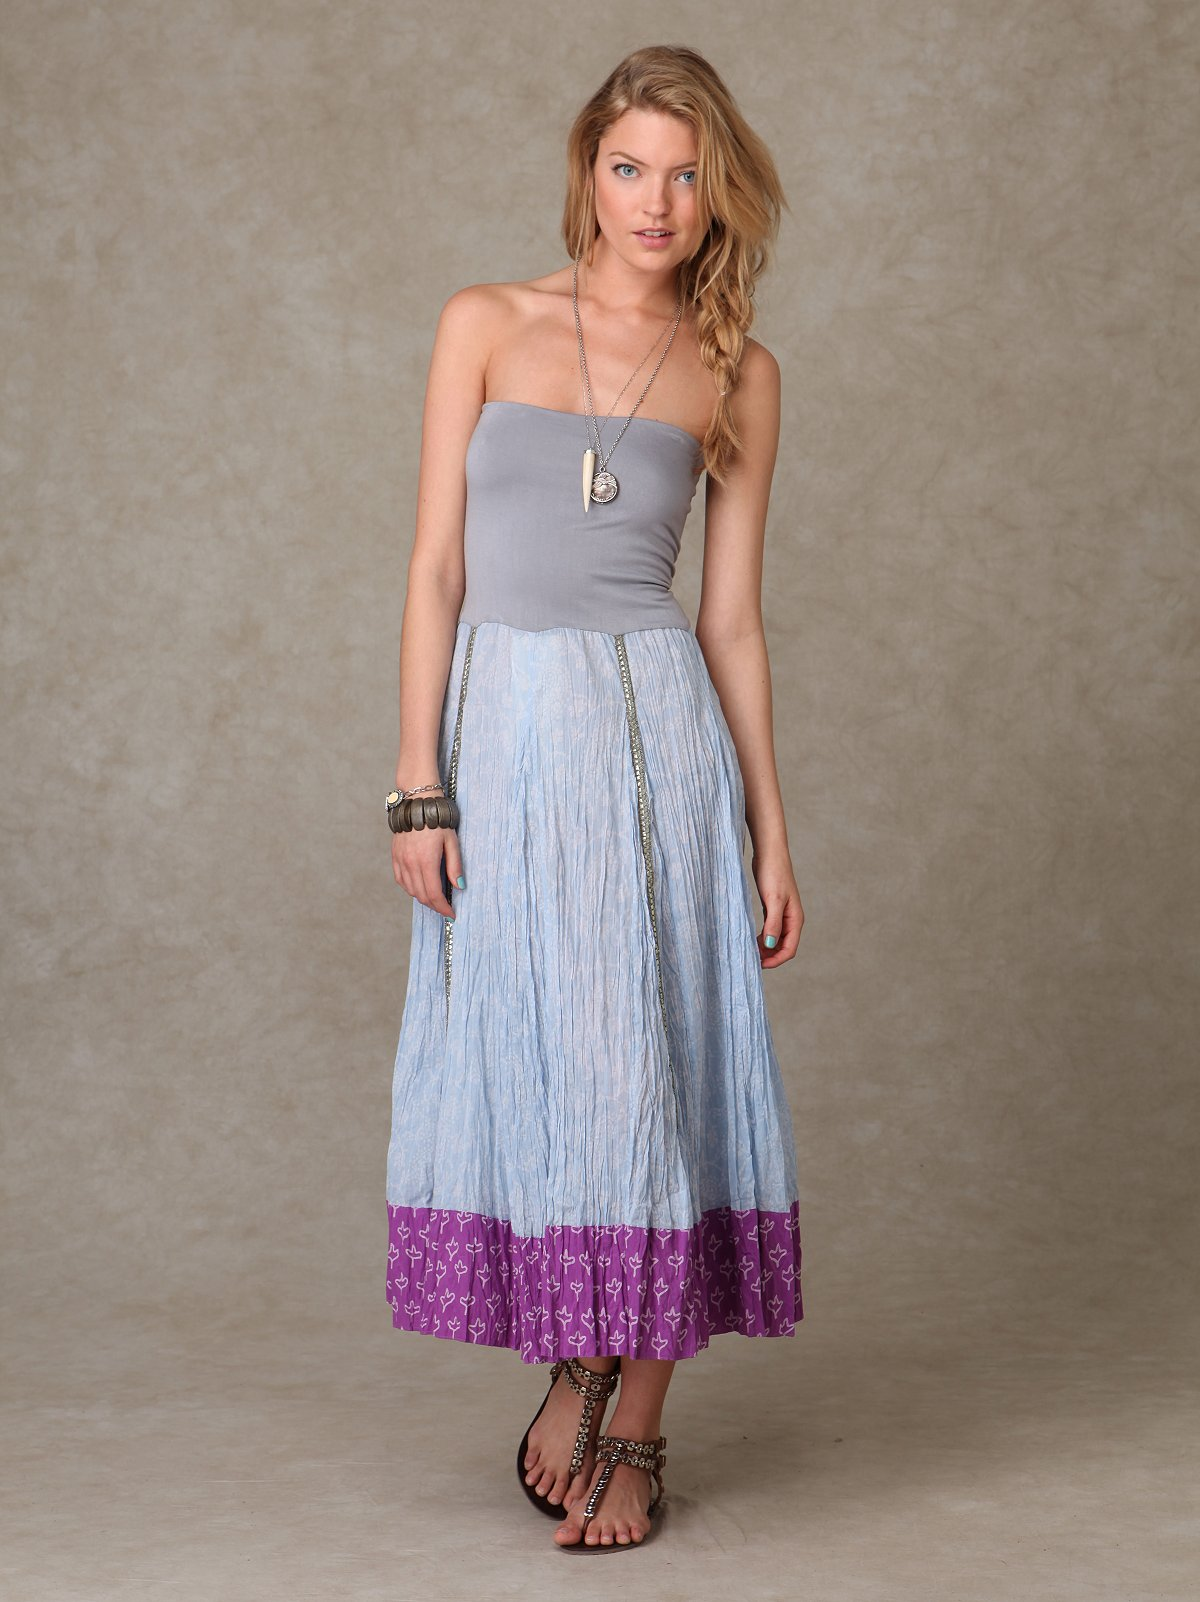 Vlatava Convertible Skirt